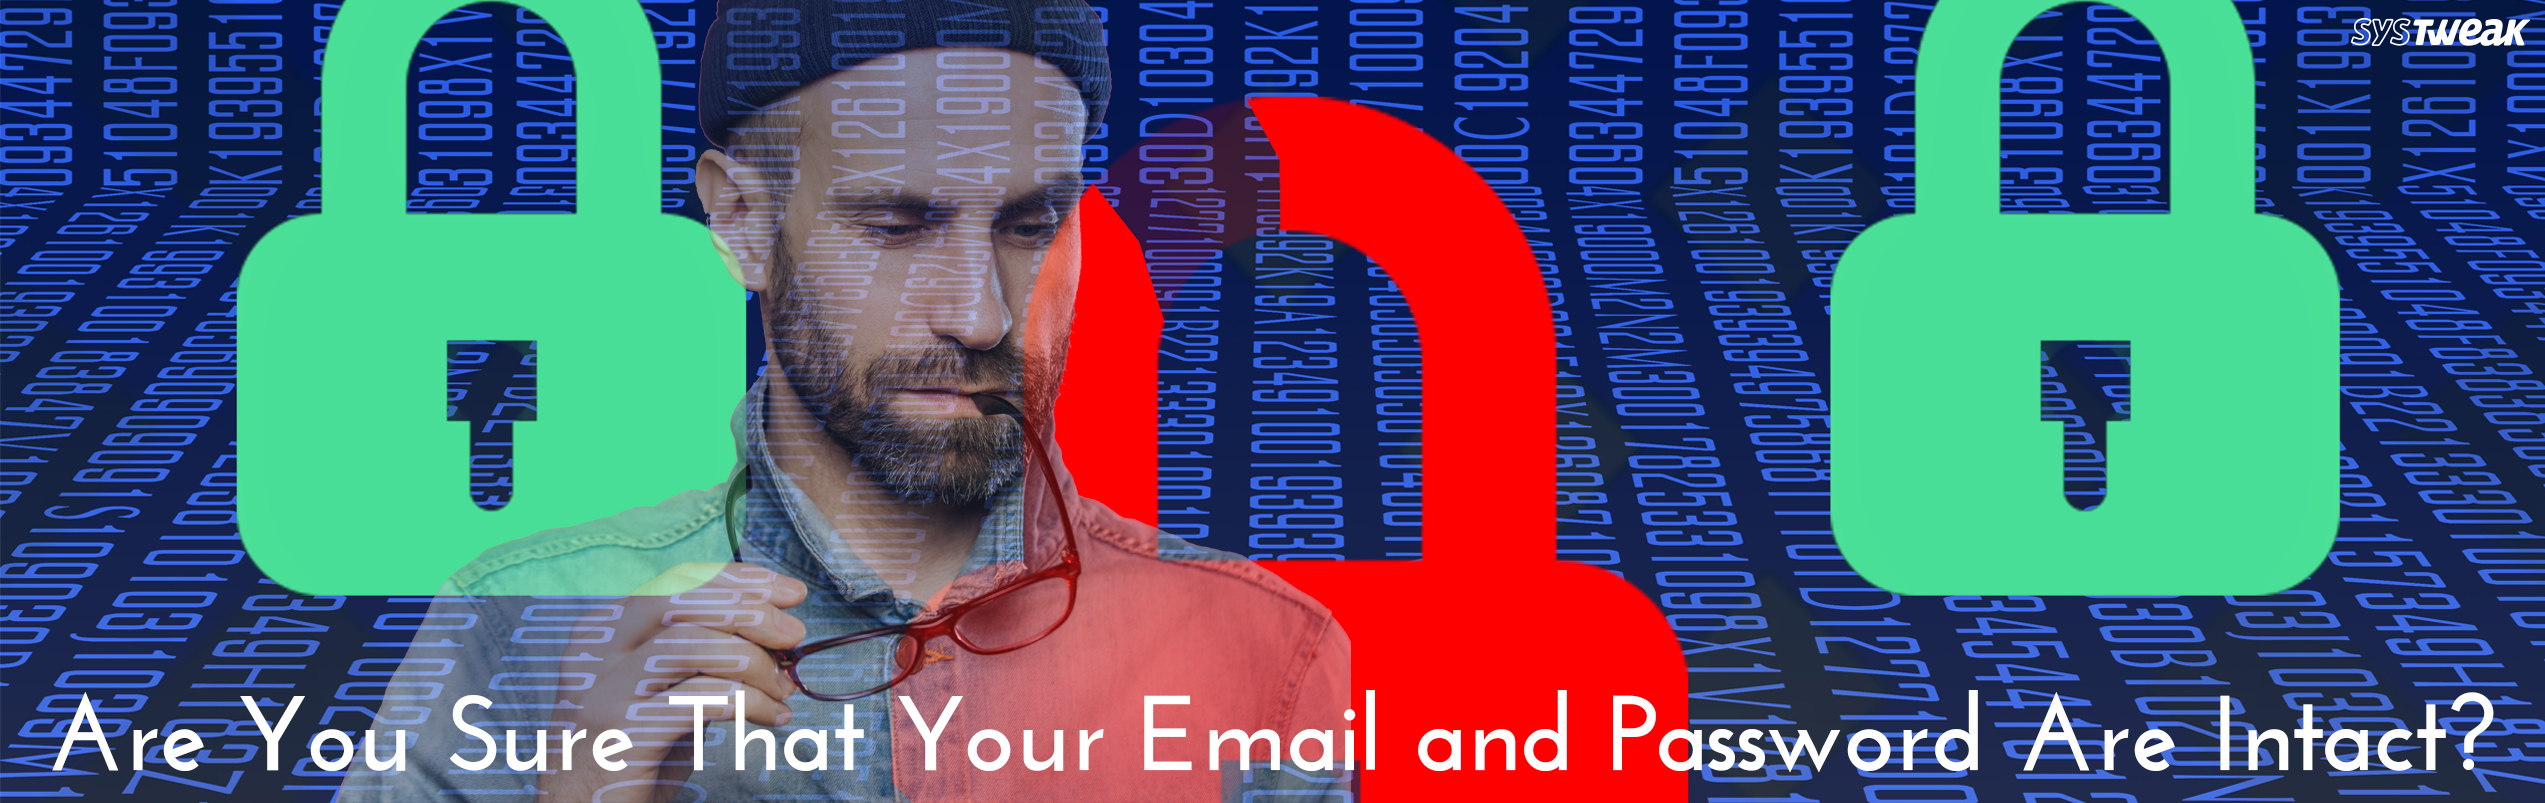 How to Check If Your Email and Password Have Been Compromised